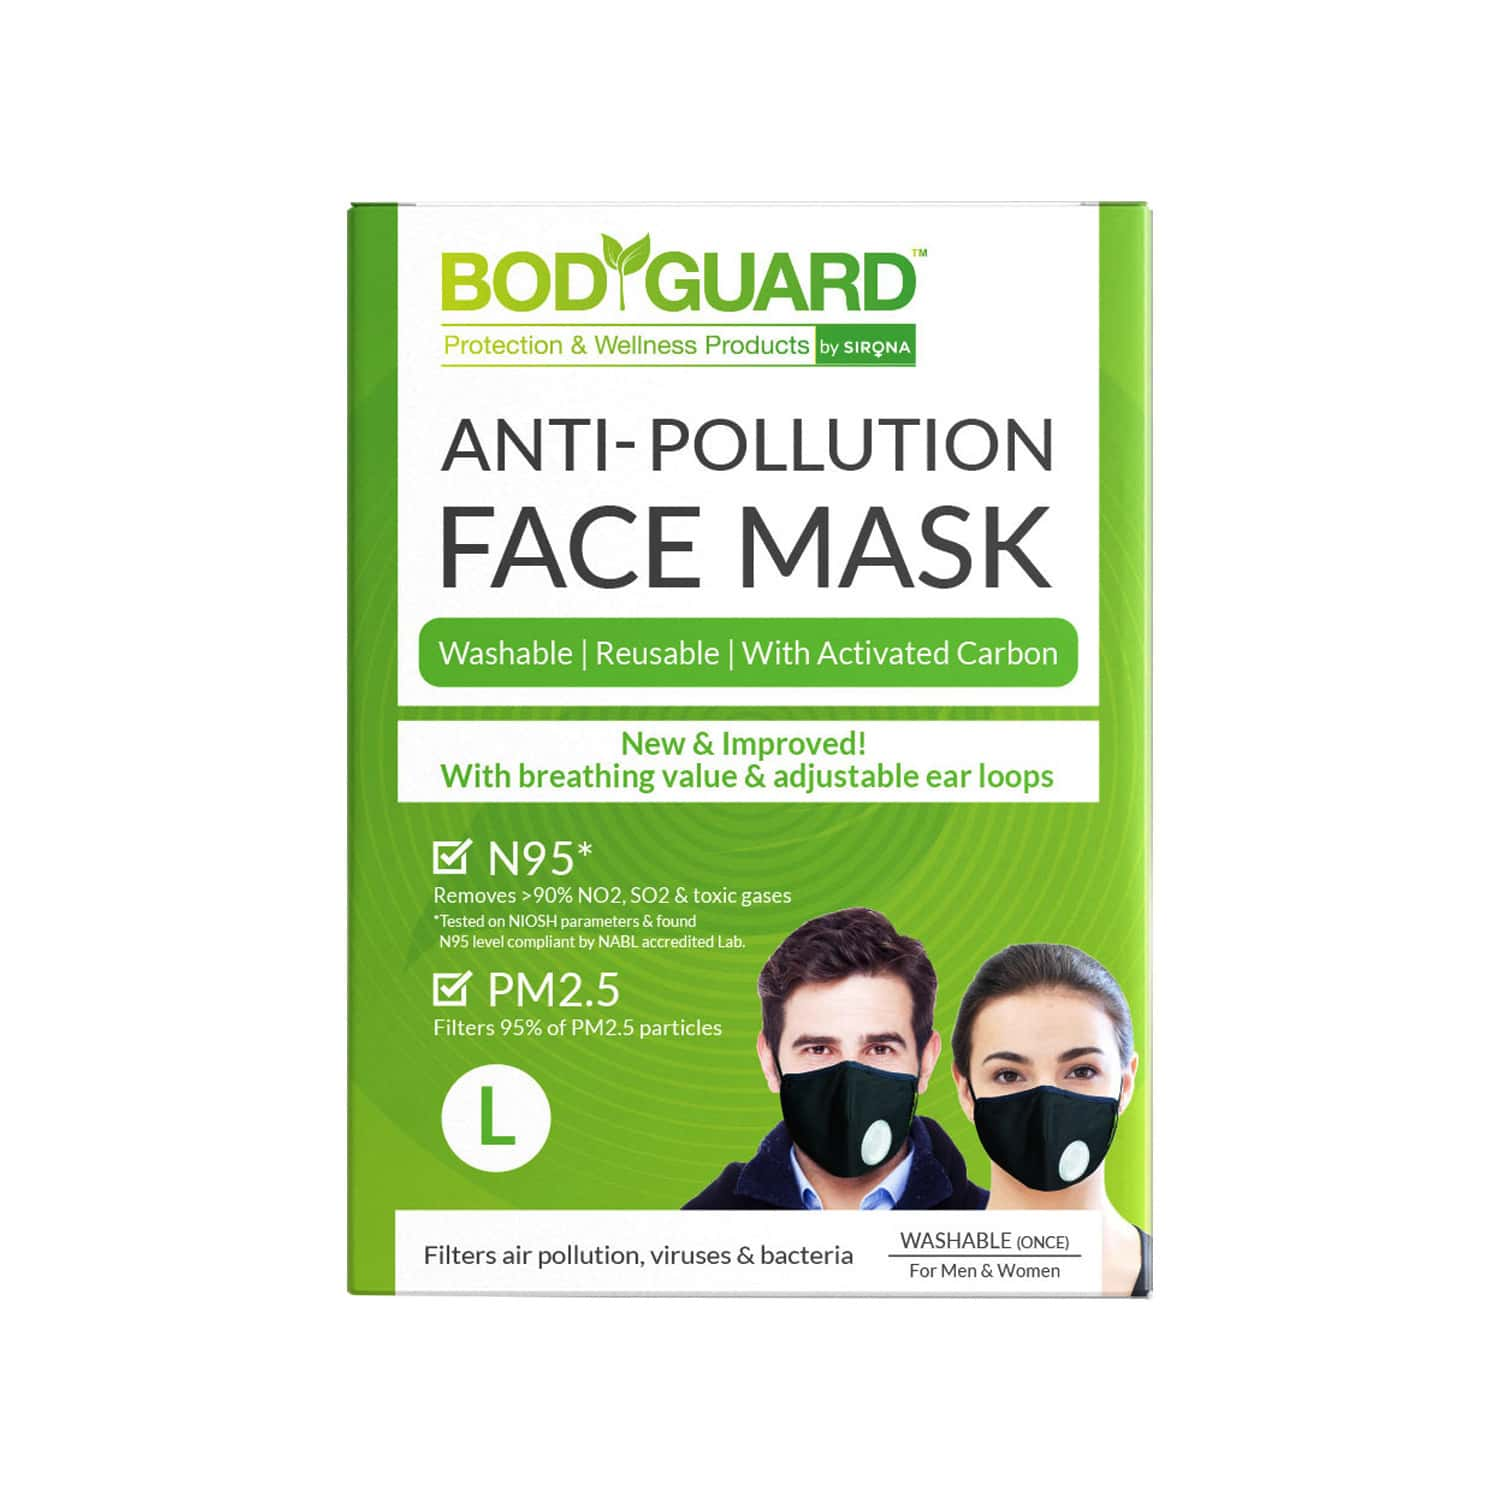 Bodyguard N95 + Pm2.5 Anti Pollution Face Mask With Valve And Activated Carbon - Large